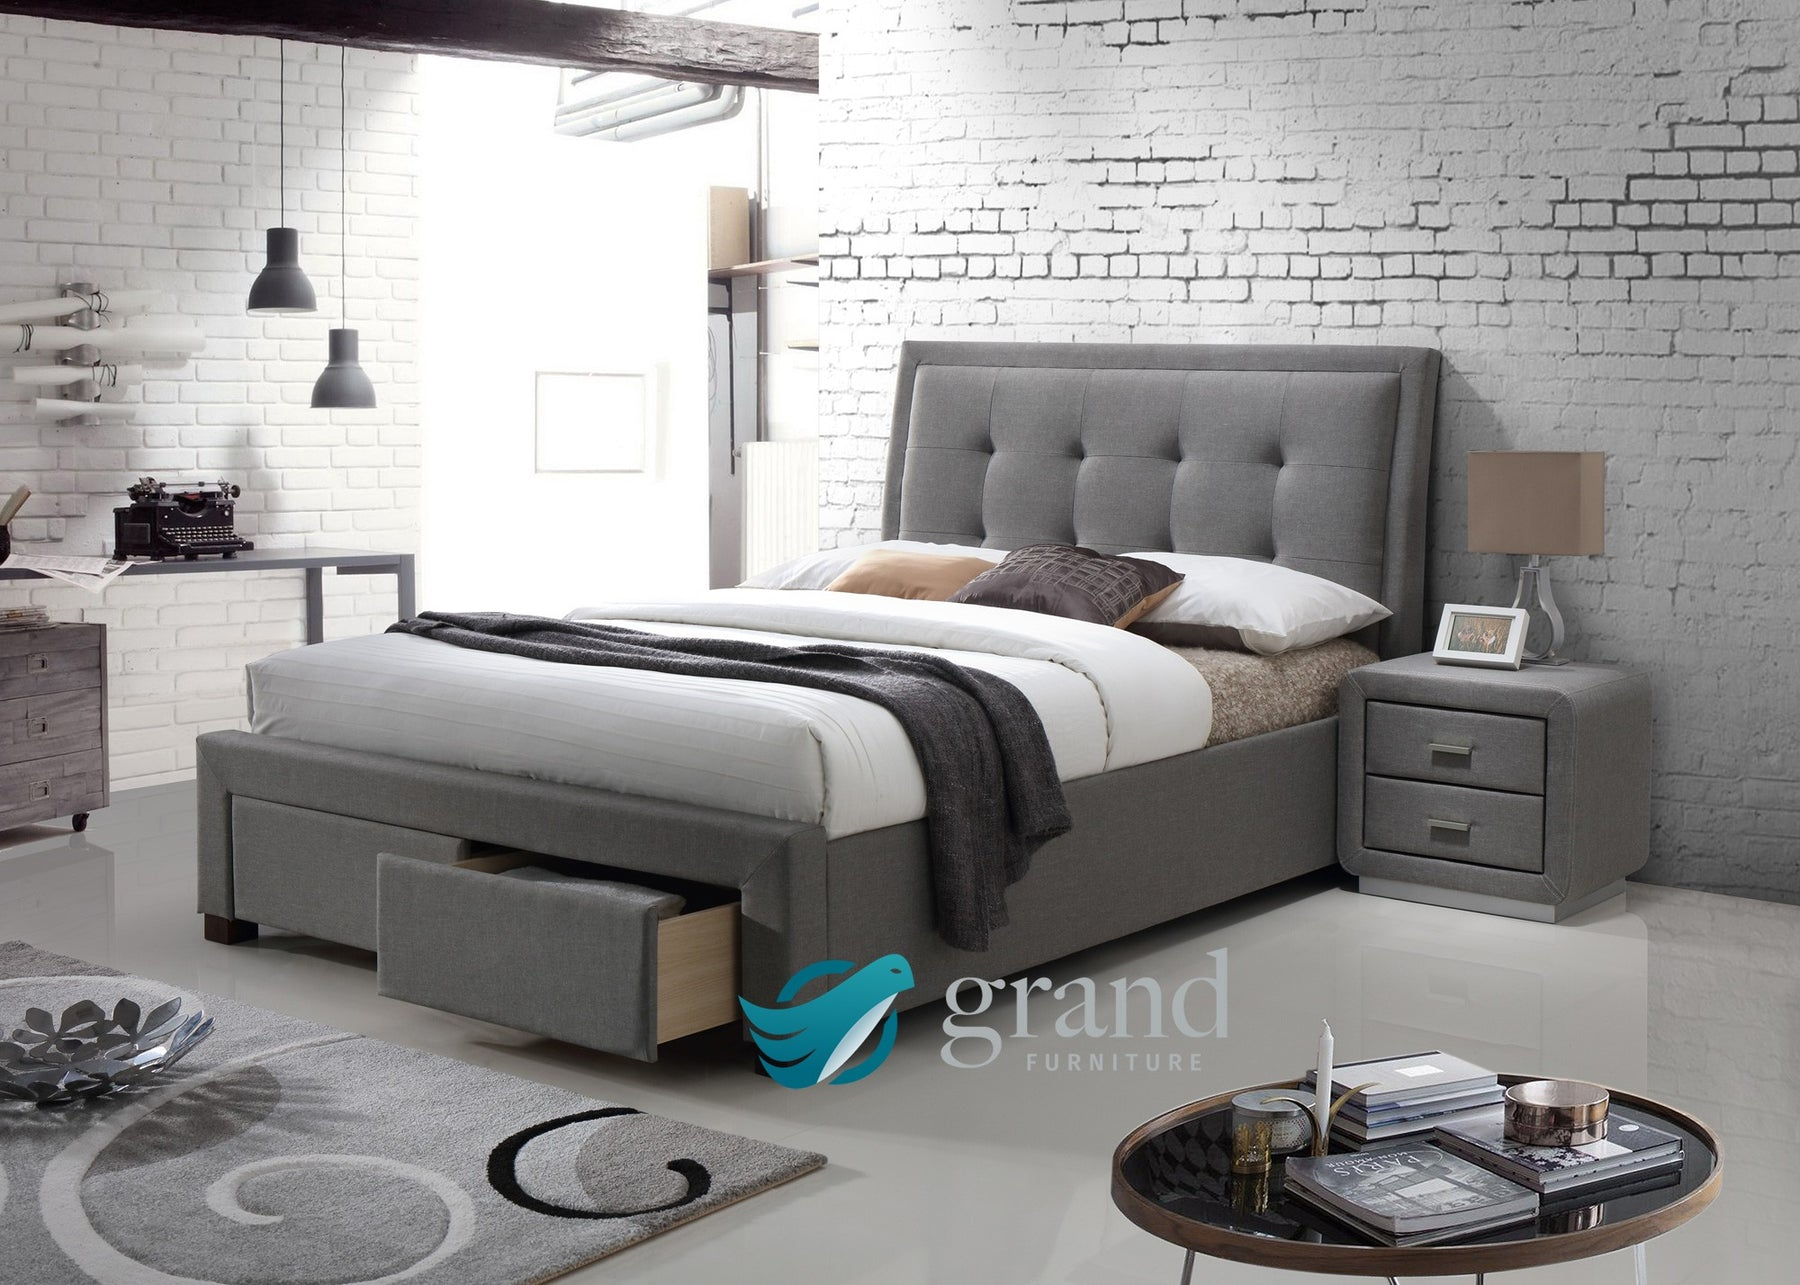 Denver Upholstered Storage Bed in Charcoal and Light Grey